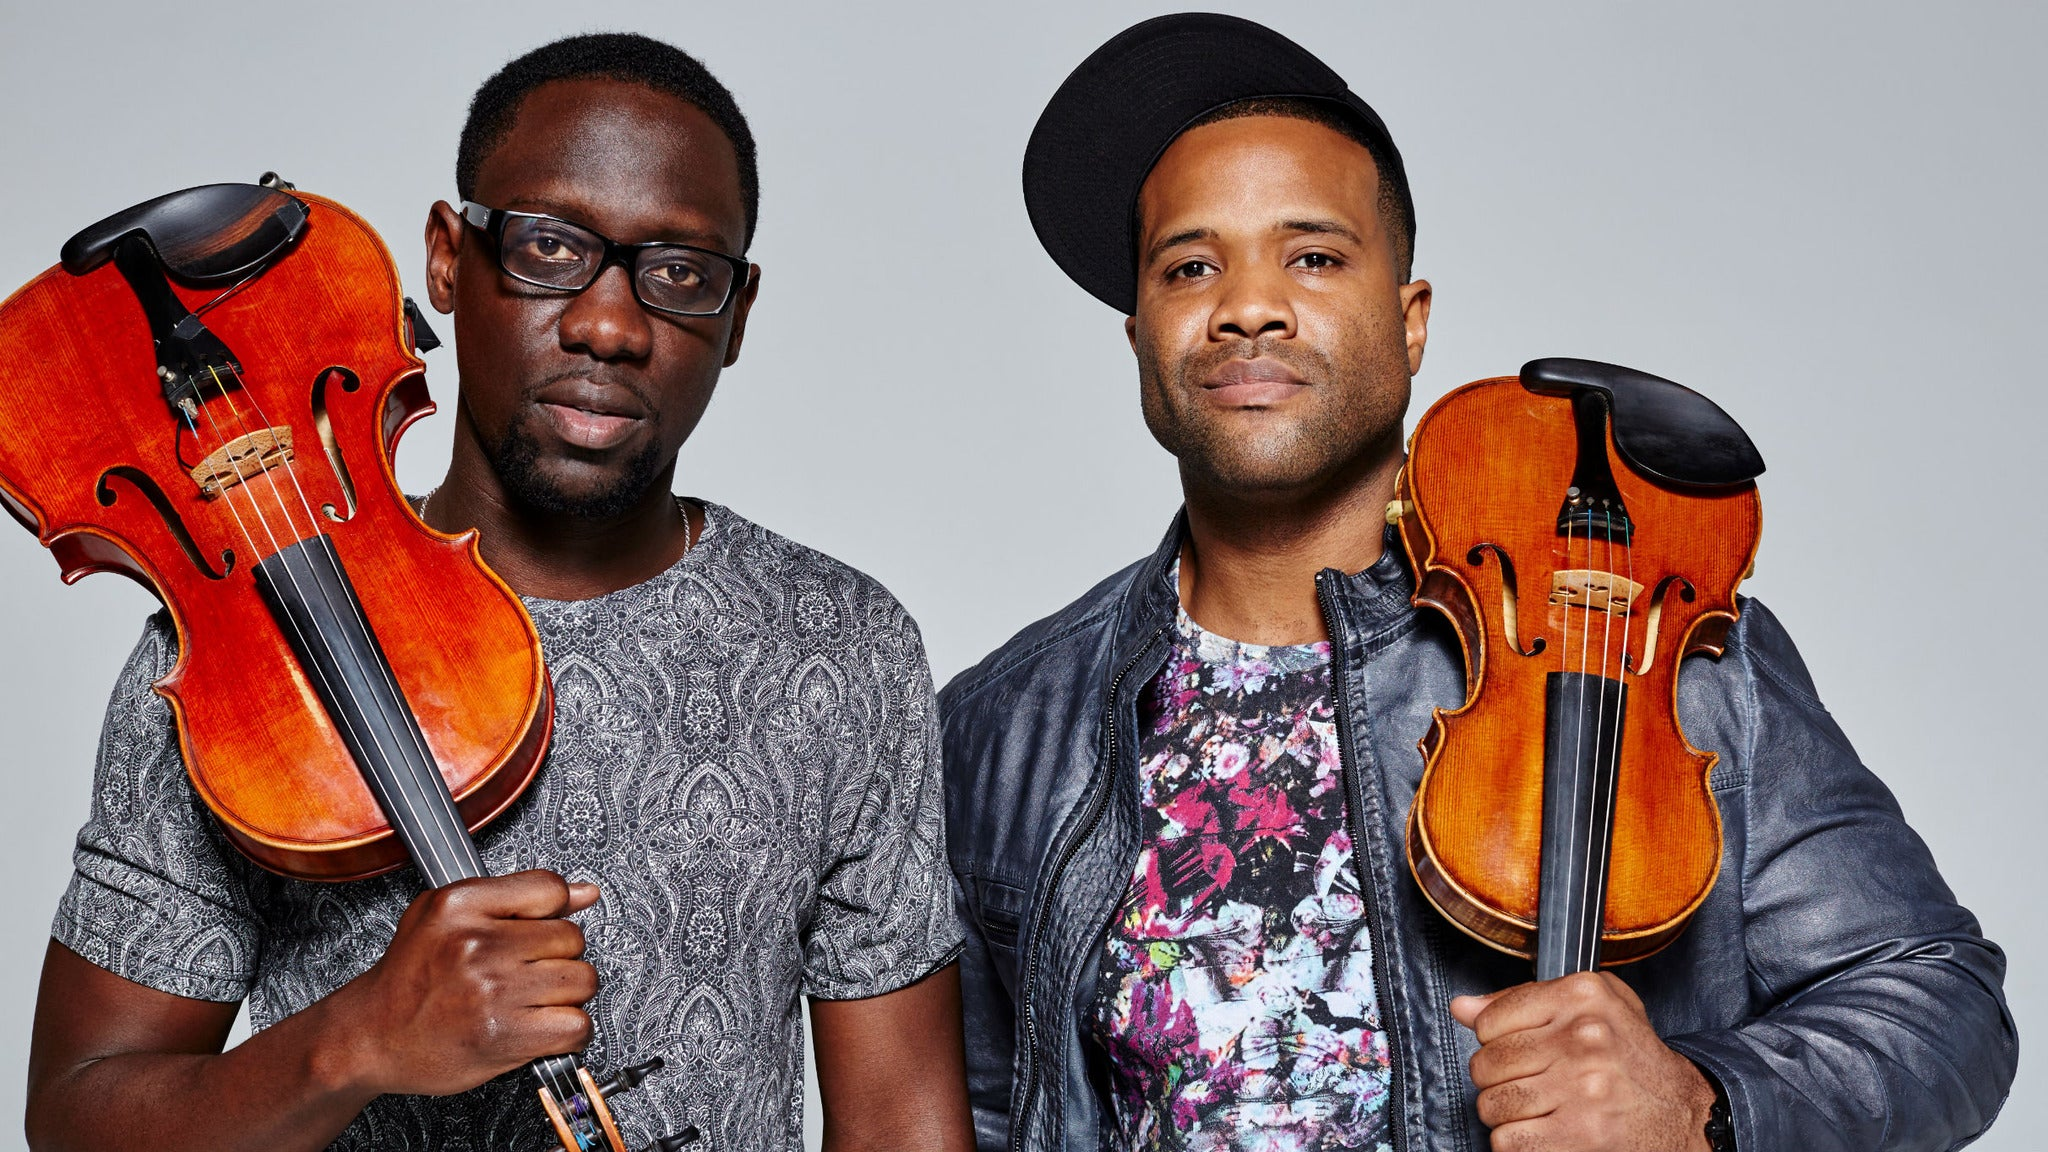 Black Violin at California Center for the Arts - Escondido, CA 92025